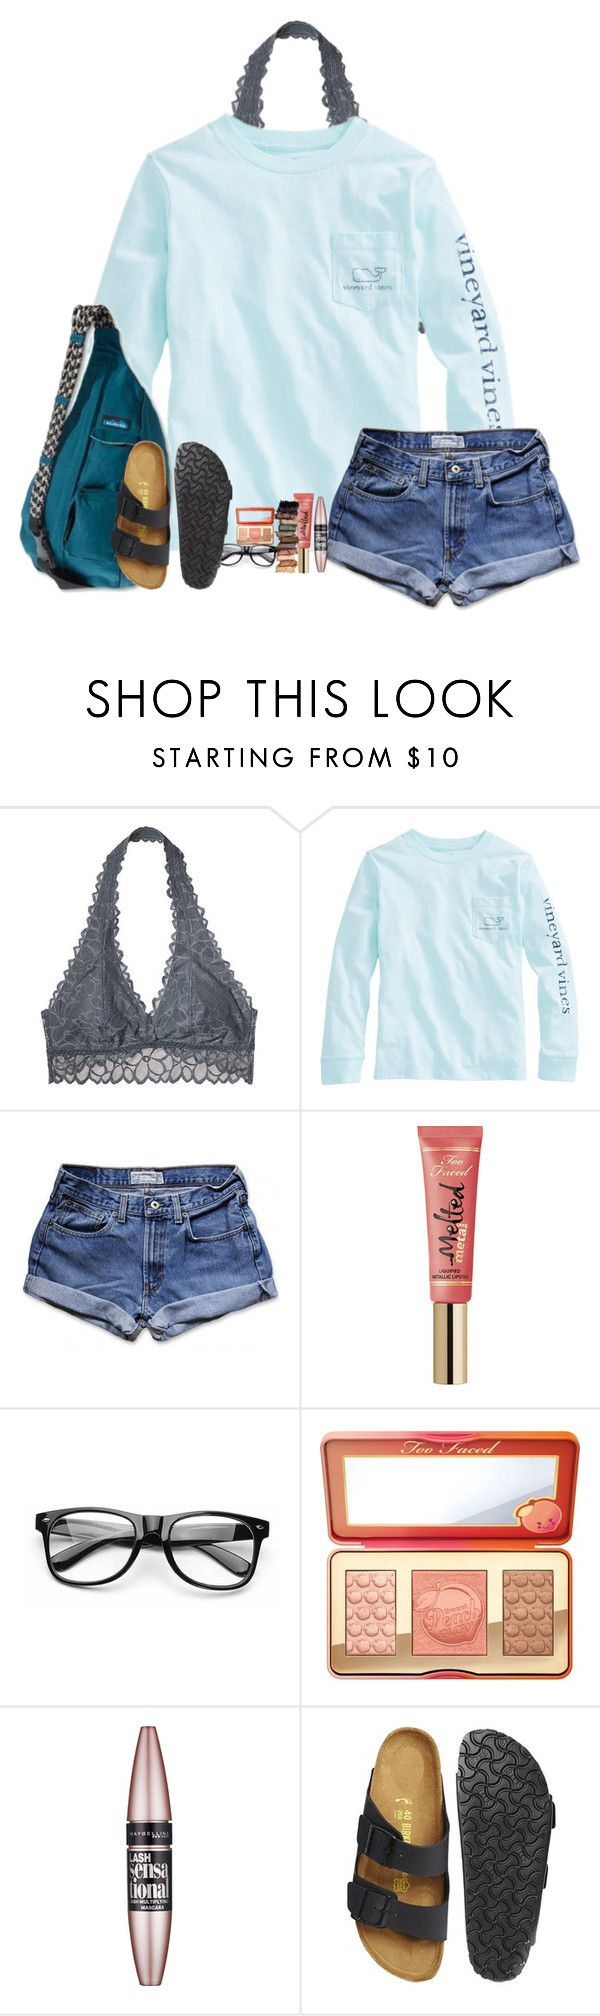 """""""Just hangin with the squad!!!!"""" by amaya-leigh ❤ liked on Polyvore featuring Victoria's Secret, Abercrombie & Fitch, Too Faced Cosmetics, Kavu, Urban Decay, Maybelline and Birkenstock"""